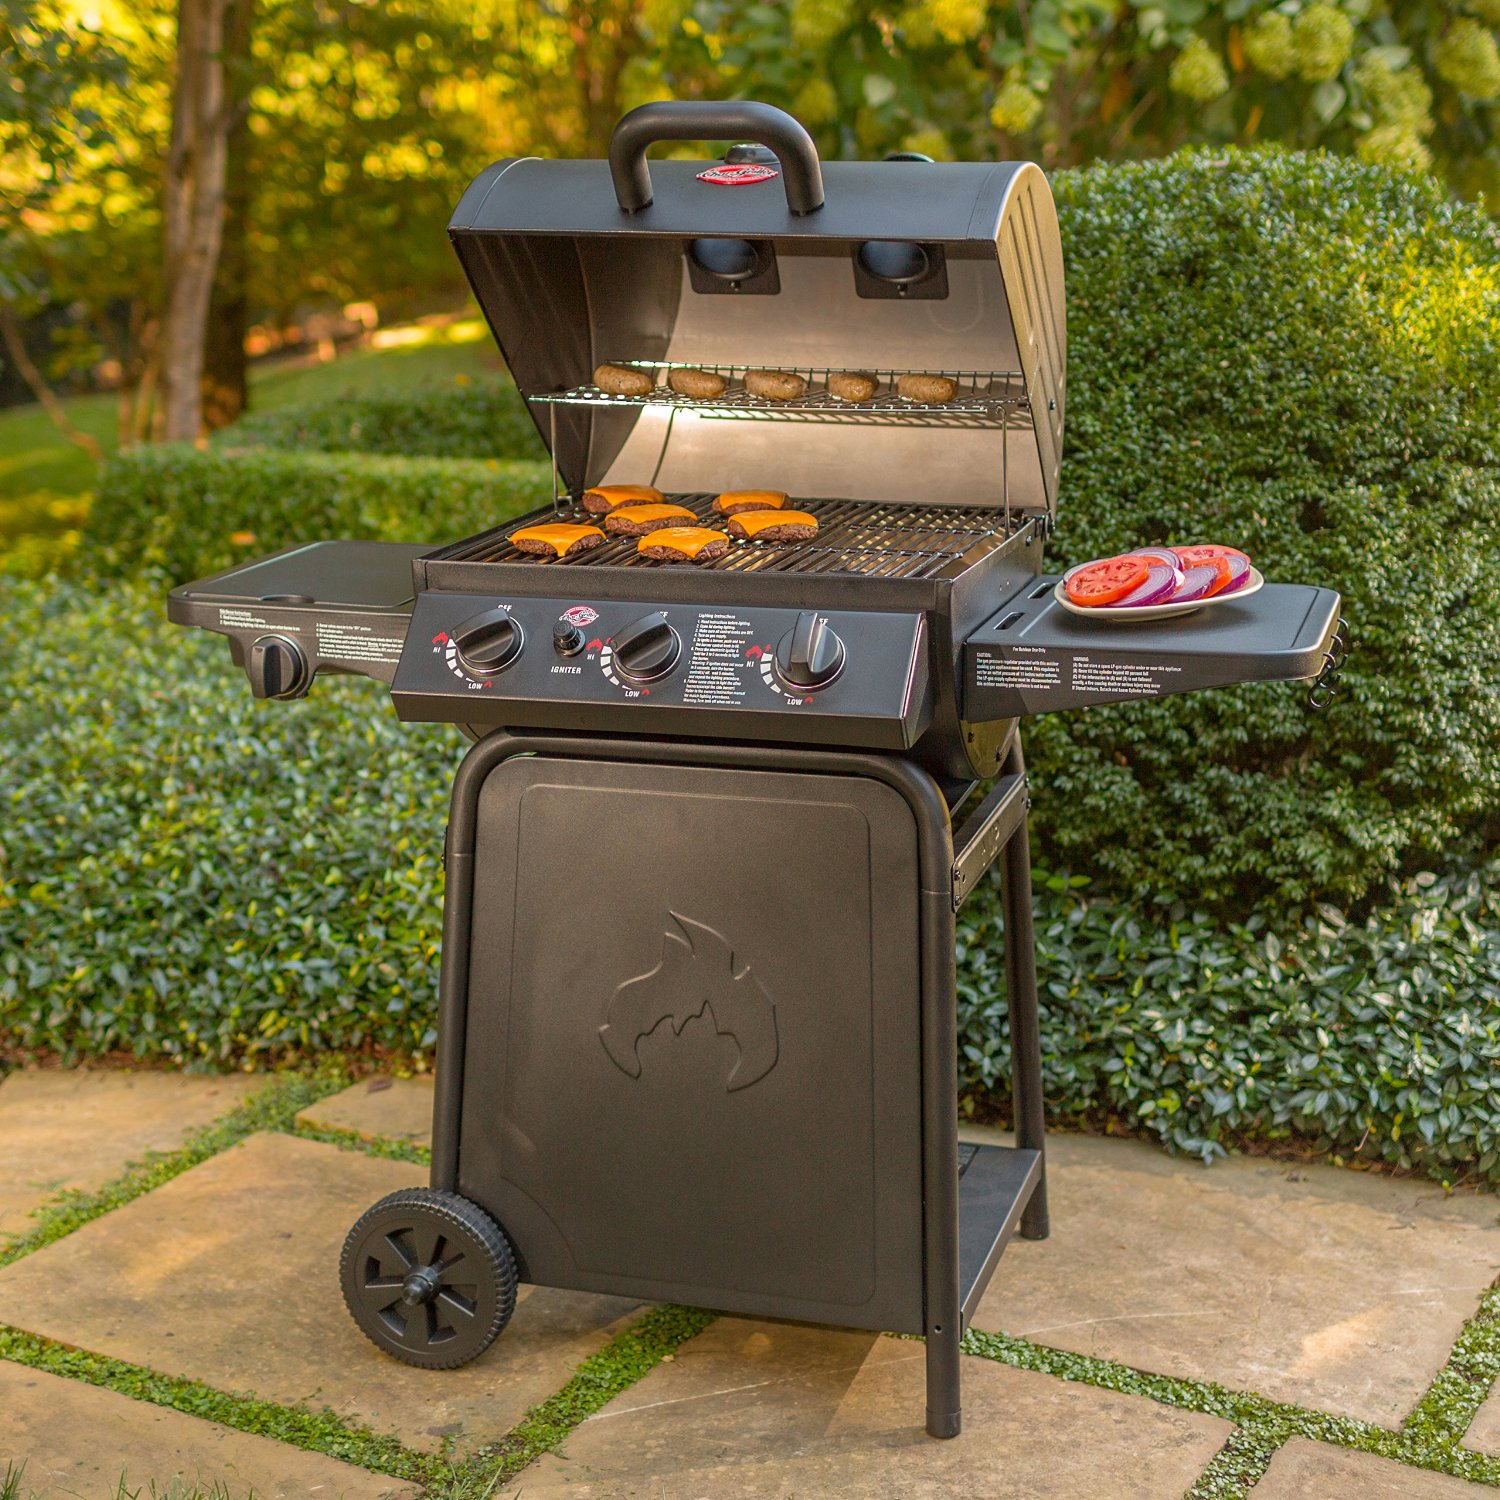 Char-Broil Traditional 4 Burner Gas Grill